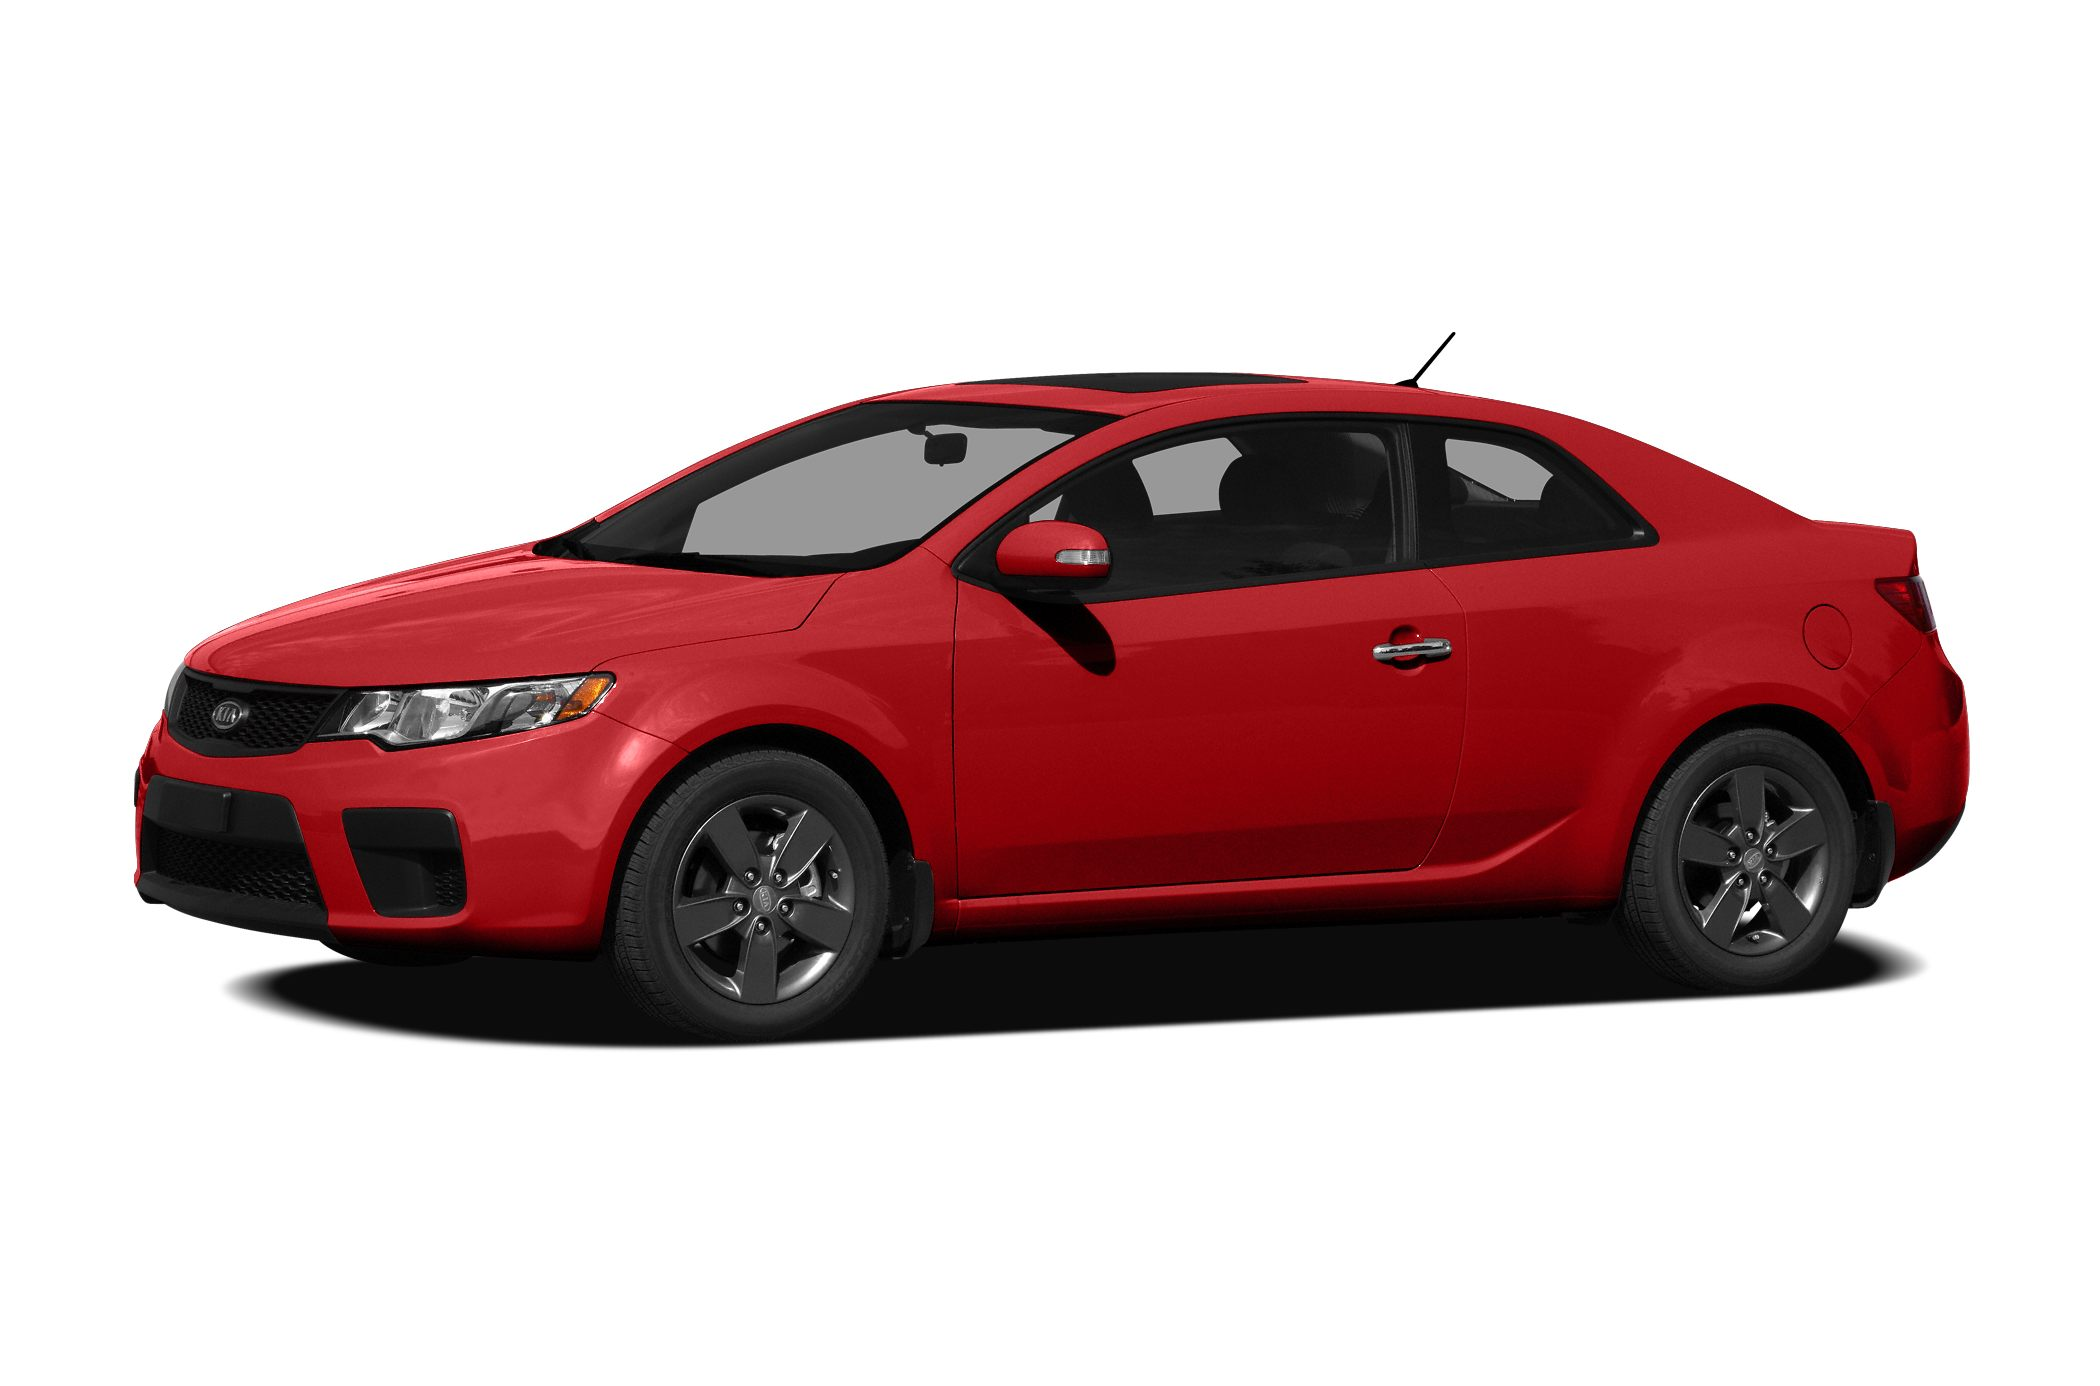 2011 Kia Forte Koup SX Coupe for sale in Modesto for $15,988 with 27,360 miles